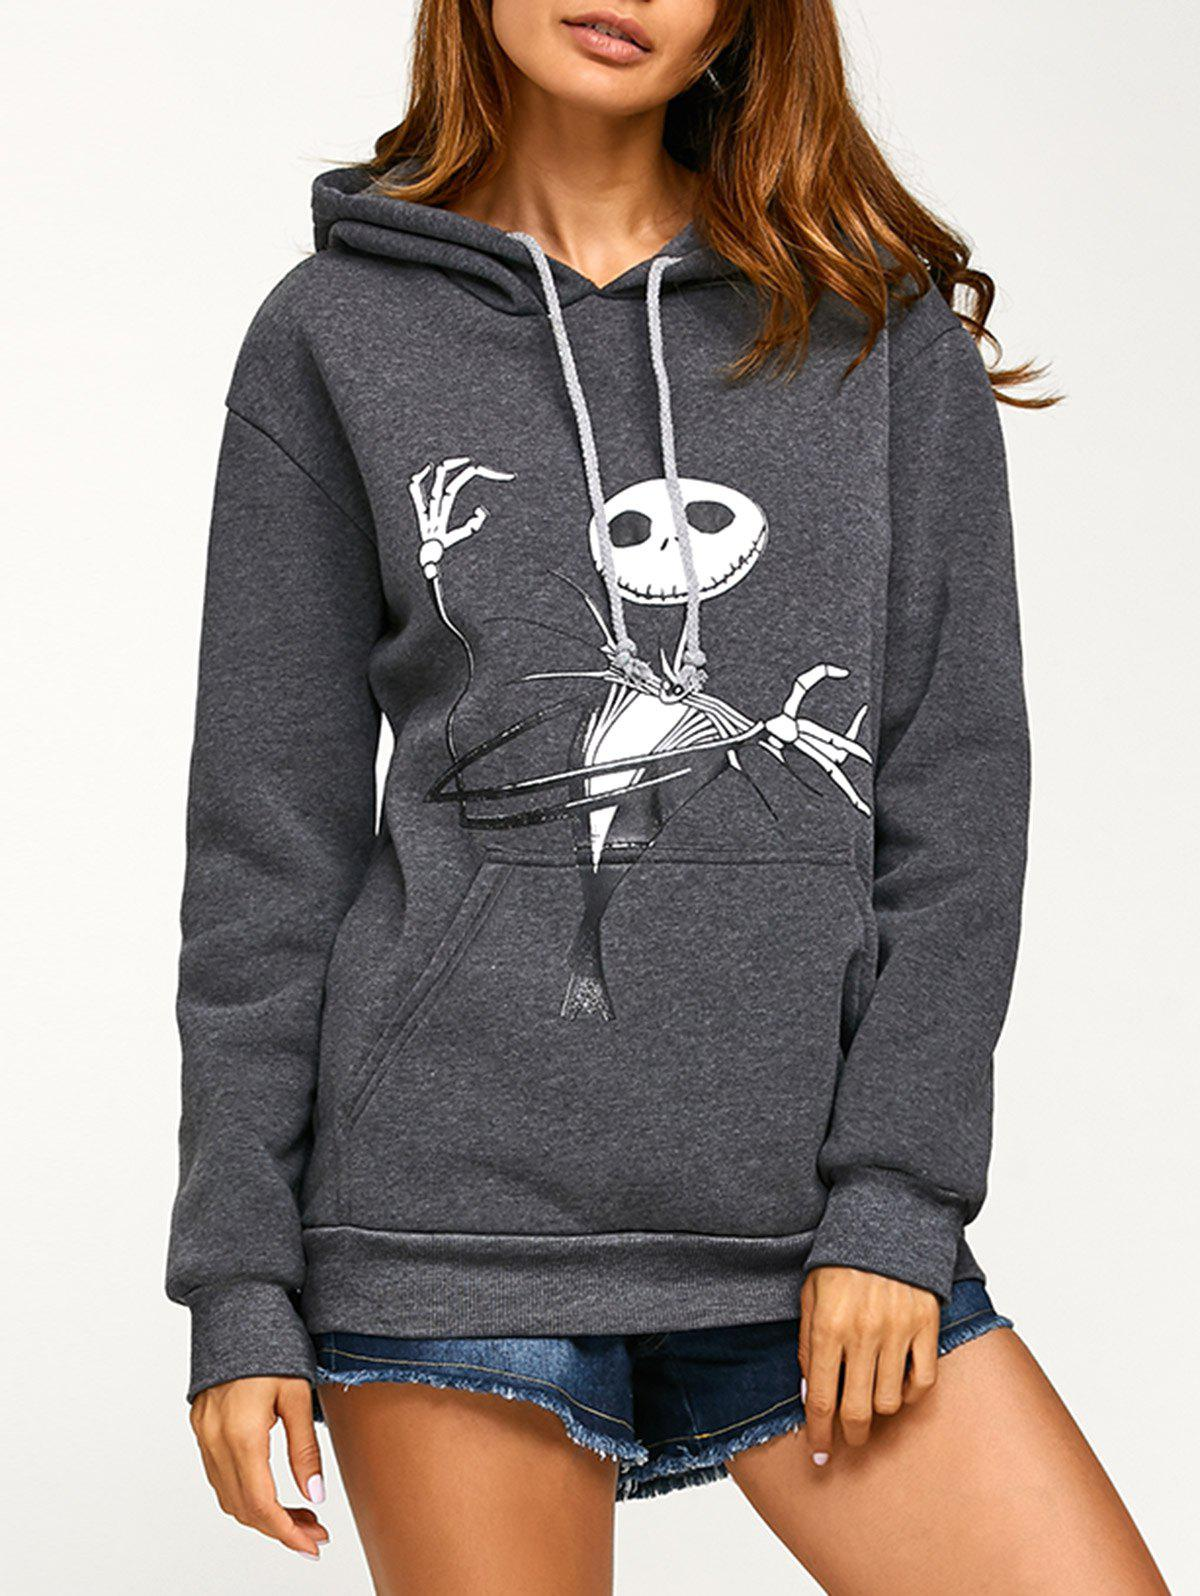 Drawstring Halloween Ghost Print HoodieWOMEN<br><br>Size: M; Color: DEEP GRAY; Material: Polyester; Shirt Length: Long; Sleeve Length: Full; Style: Casual; Pattern Style: Others; Season: Fall,Spring,Winter; Weight: 0.470kg; Package Contents: 1 x Hoodie;